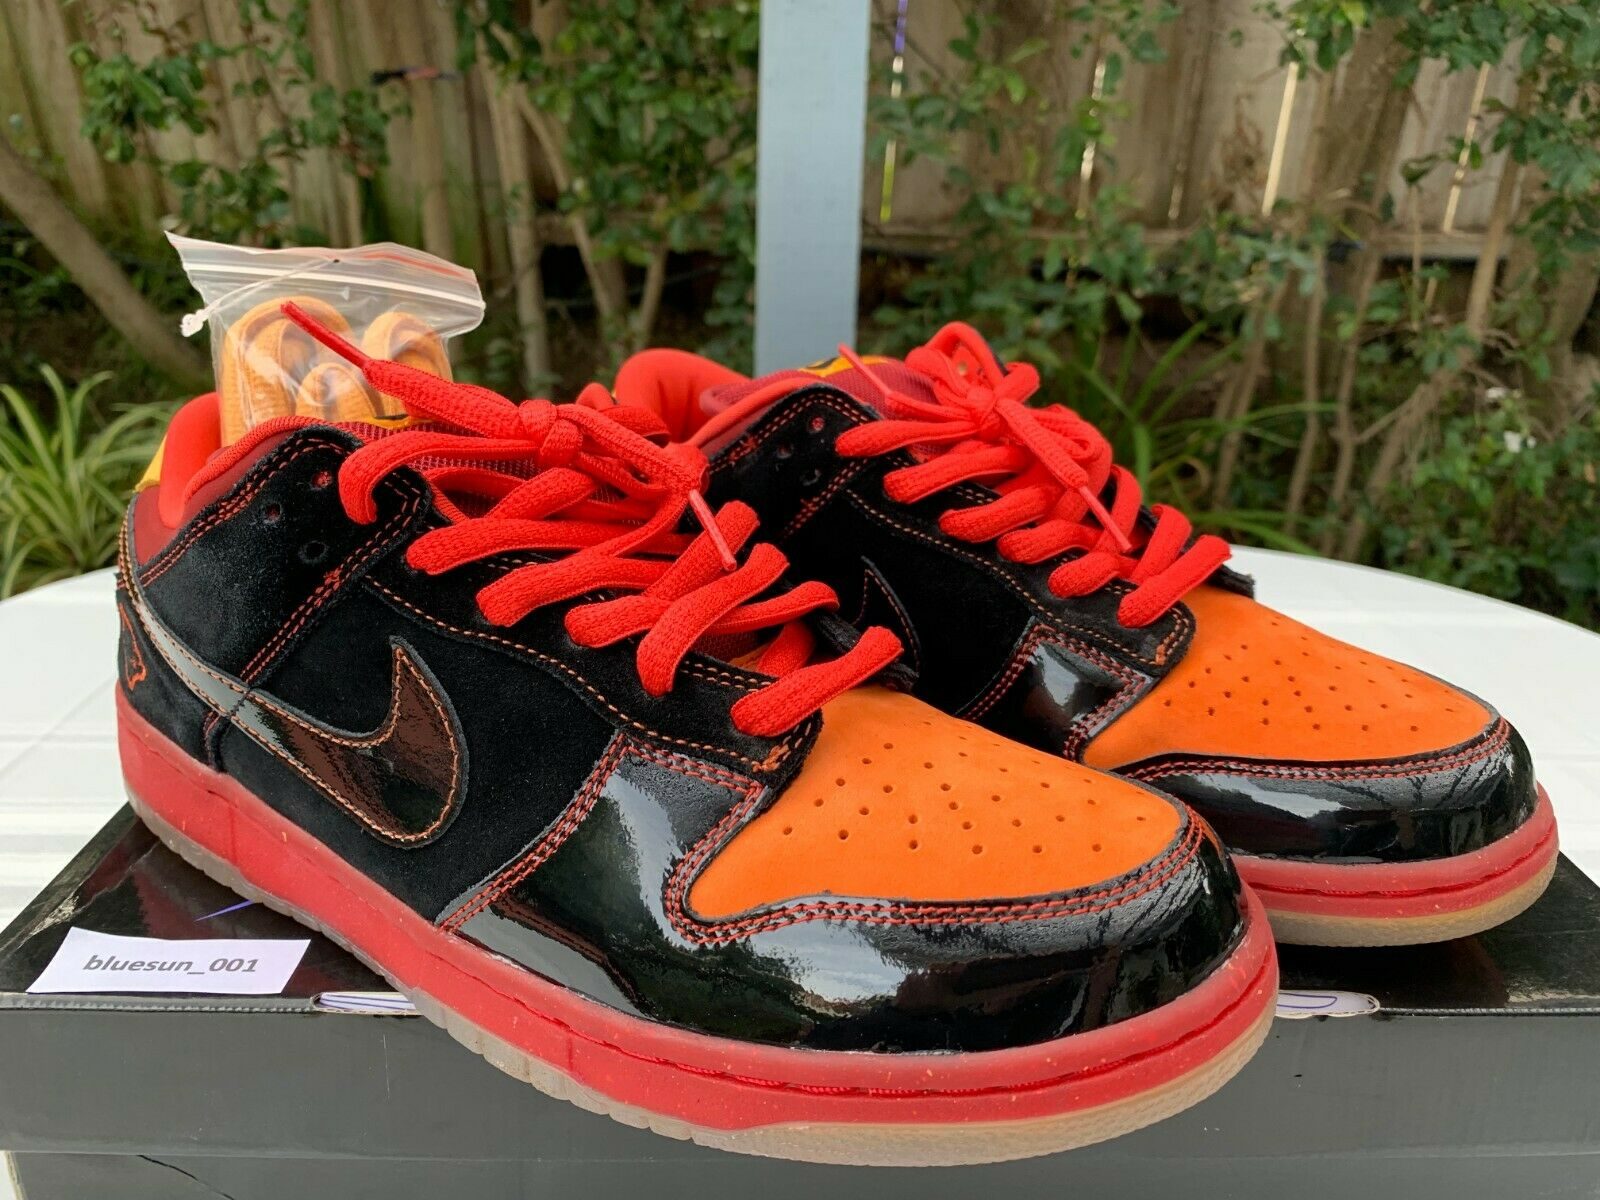 8659a3e8a96b8c Nike SB Dunk Low Premium Limited Edition Hawaii - 11 - Boxed RARE NEW Size  nsebwq2890-Casual Shoes - sandals.ewdayplumbing.com